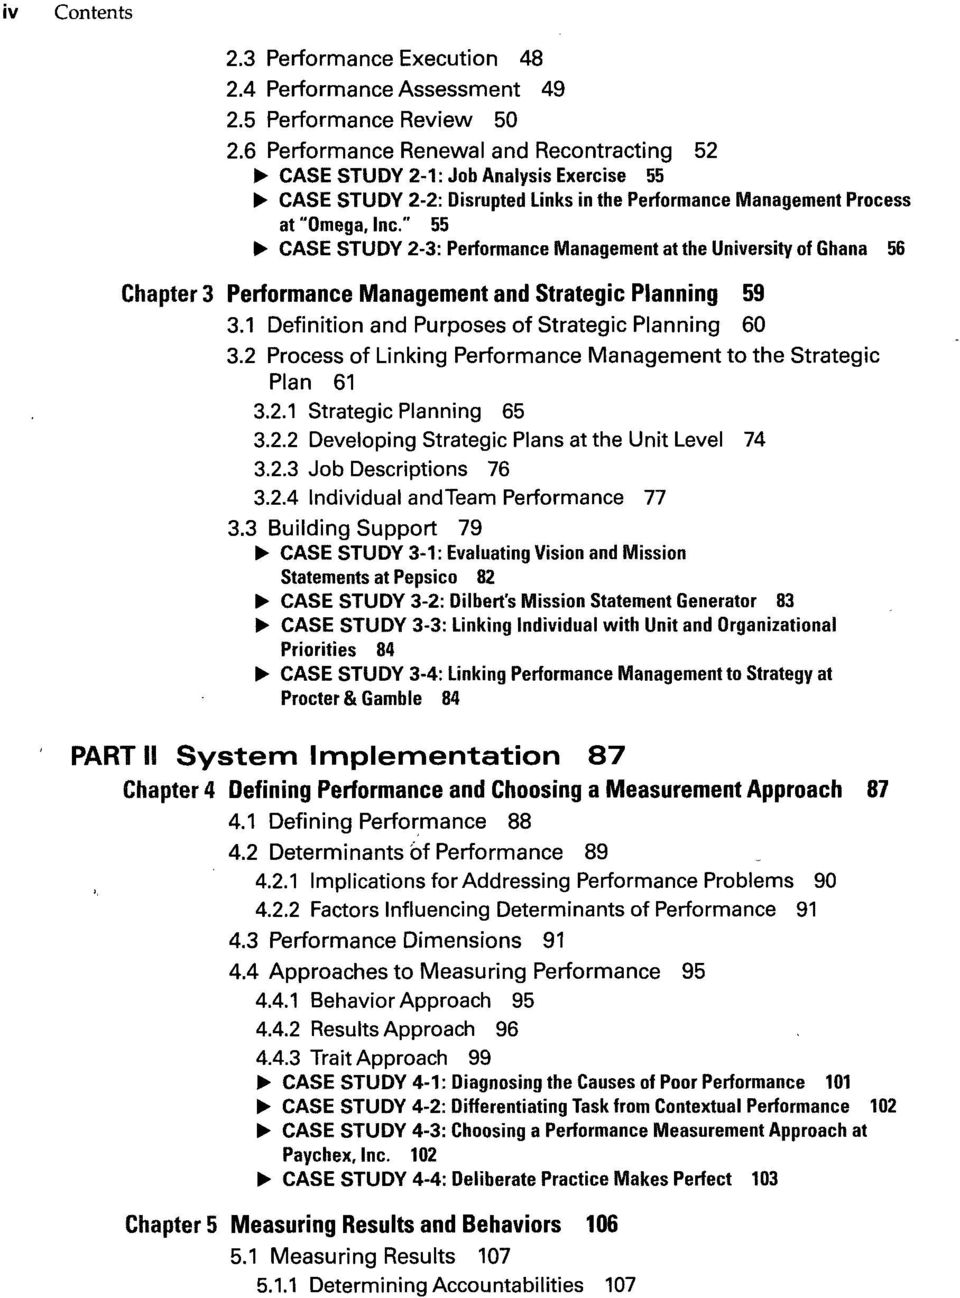 """ 55 CASE STUDY 2-3: Performance Management at the University of Ghana 56 Chapter 3 Performance Management and Strategic Planning 59 3.1 Definition and Purposes of Strategic Planning 60 3."